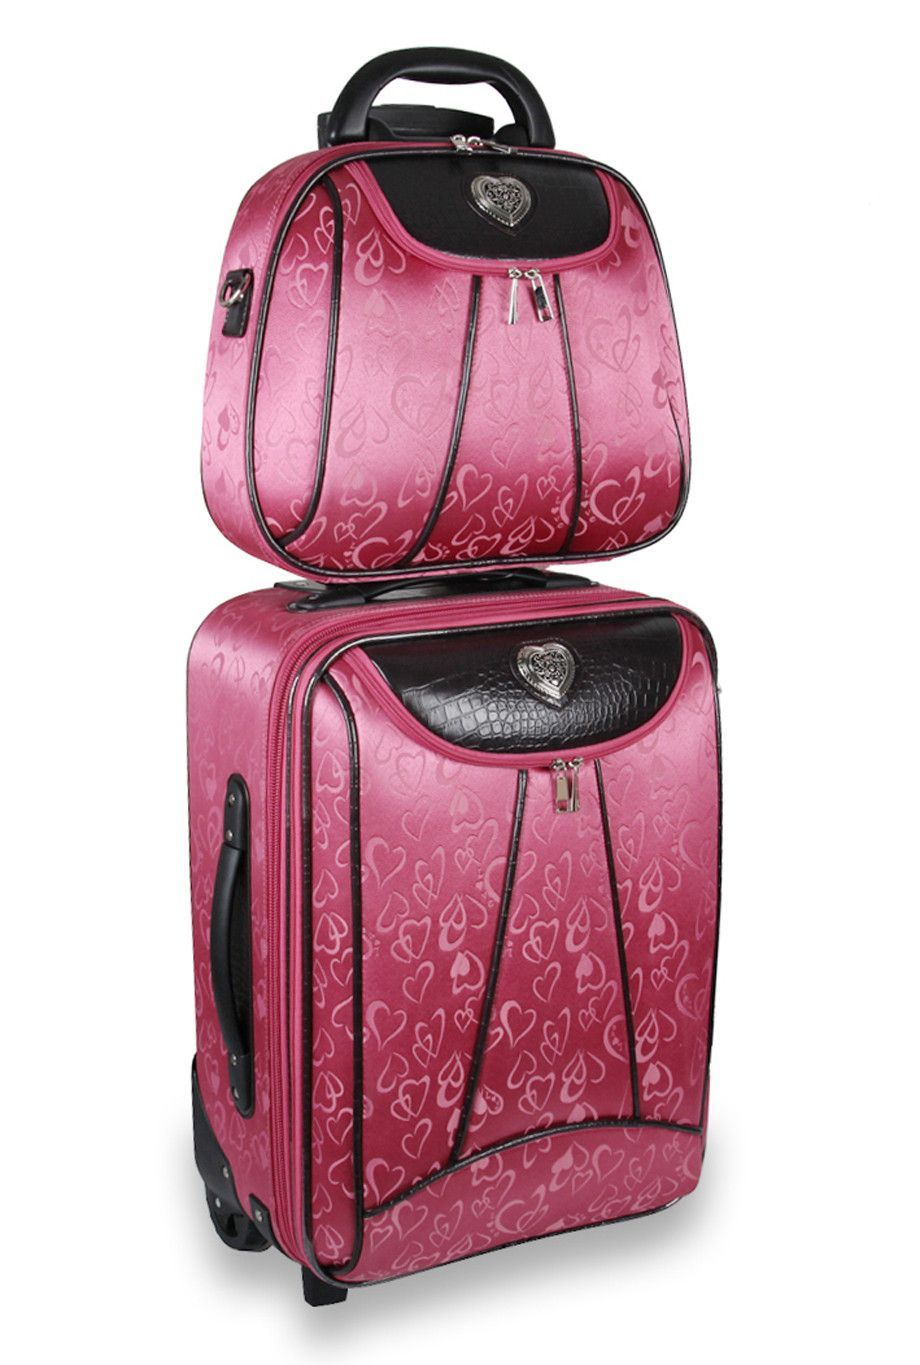 Pink Heart Rolling Luggage from JM company Cheaper than Amazon ...